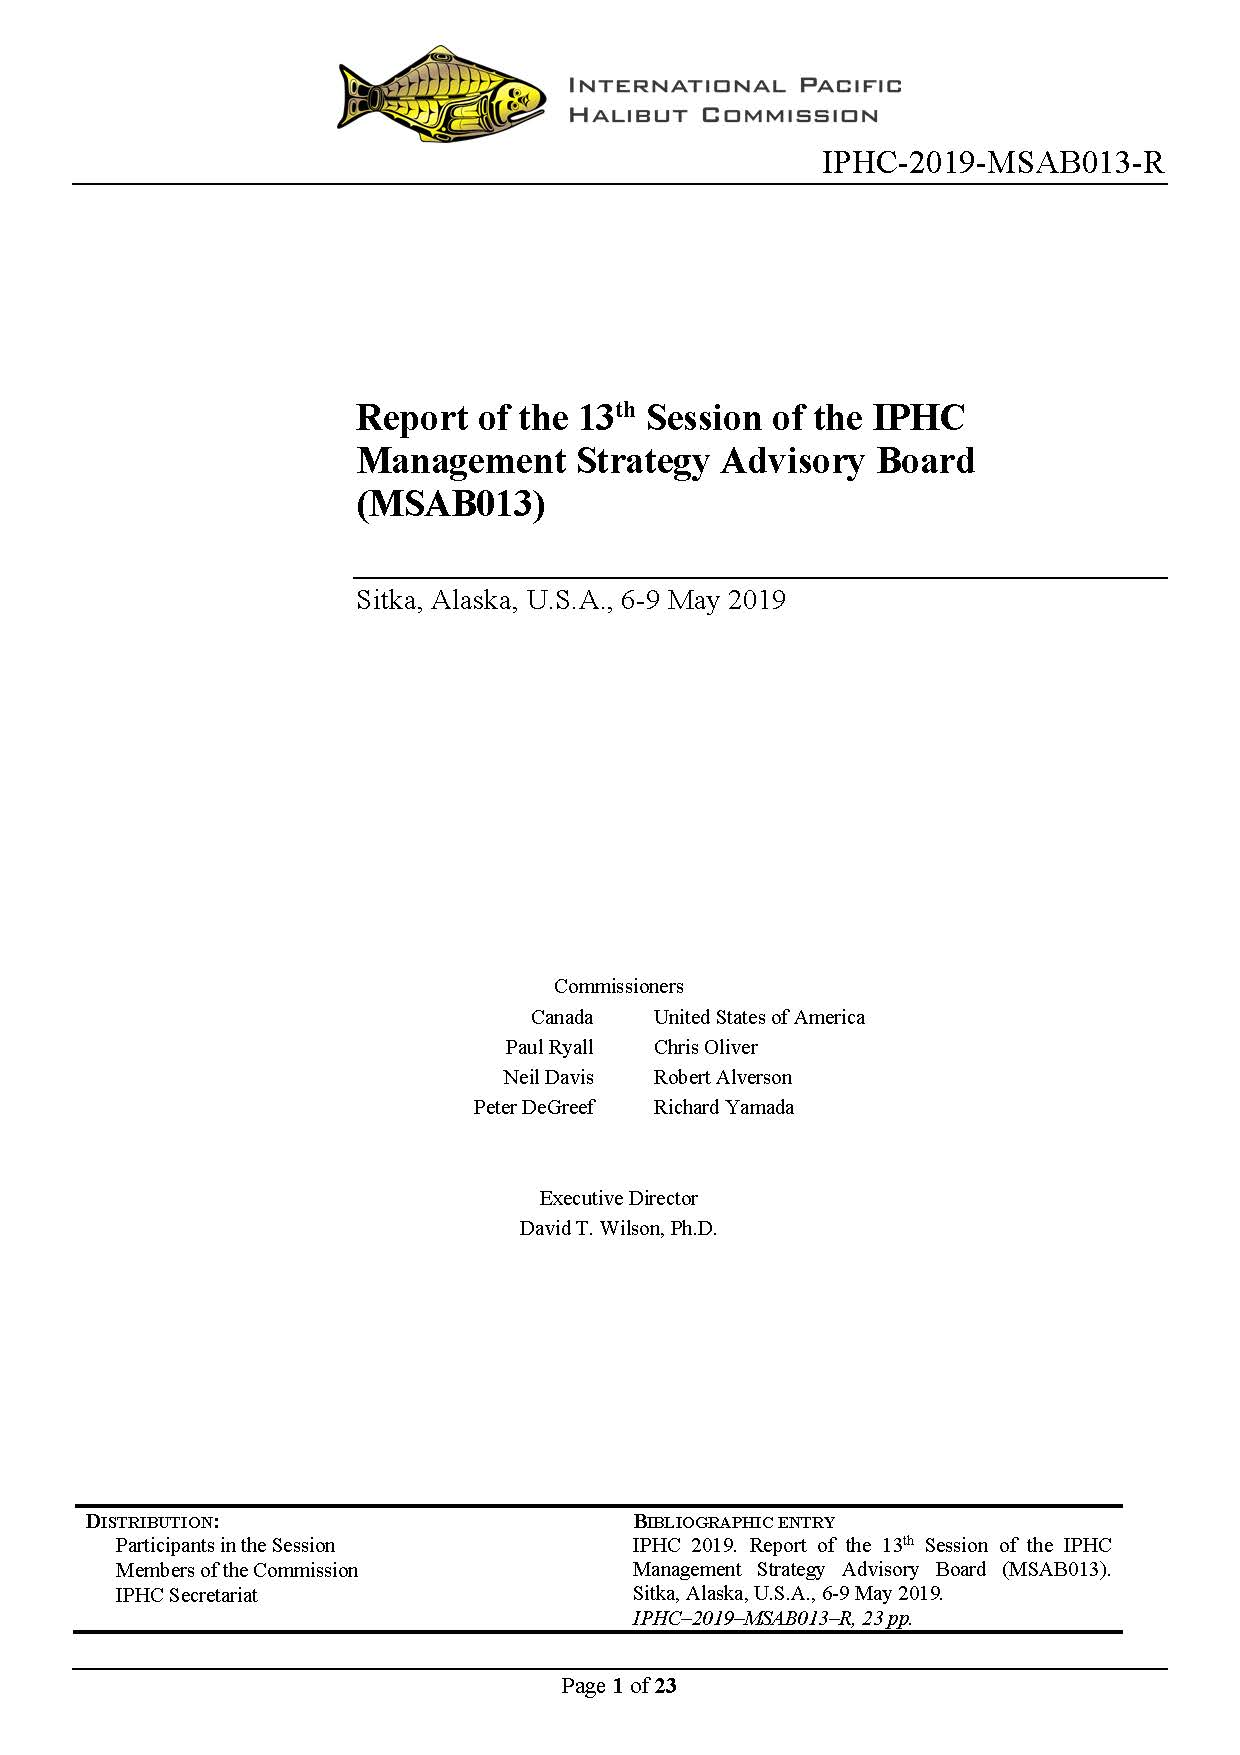 IPHC-2019-MSAB013-R - Report of the MSAB013_Page_01.jpg